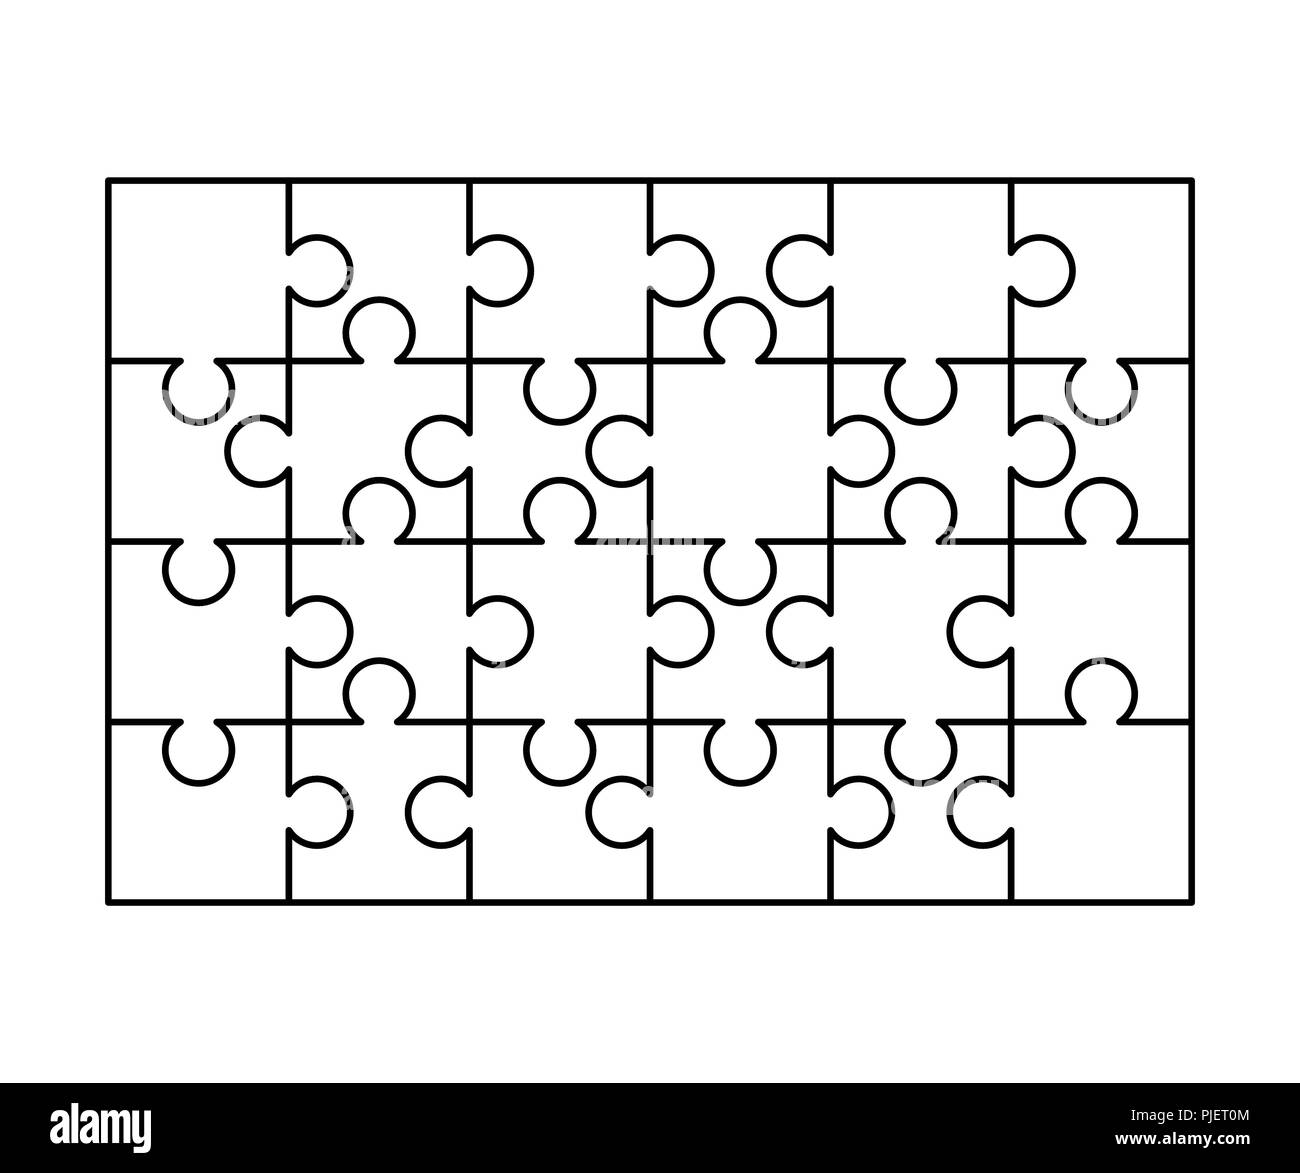 24 White Puzzles Pieces Arranged In A Rectangle Shape Jigsaw Puzzle